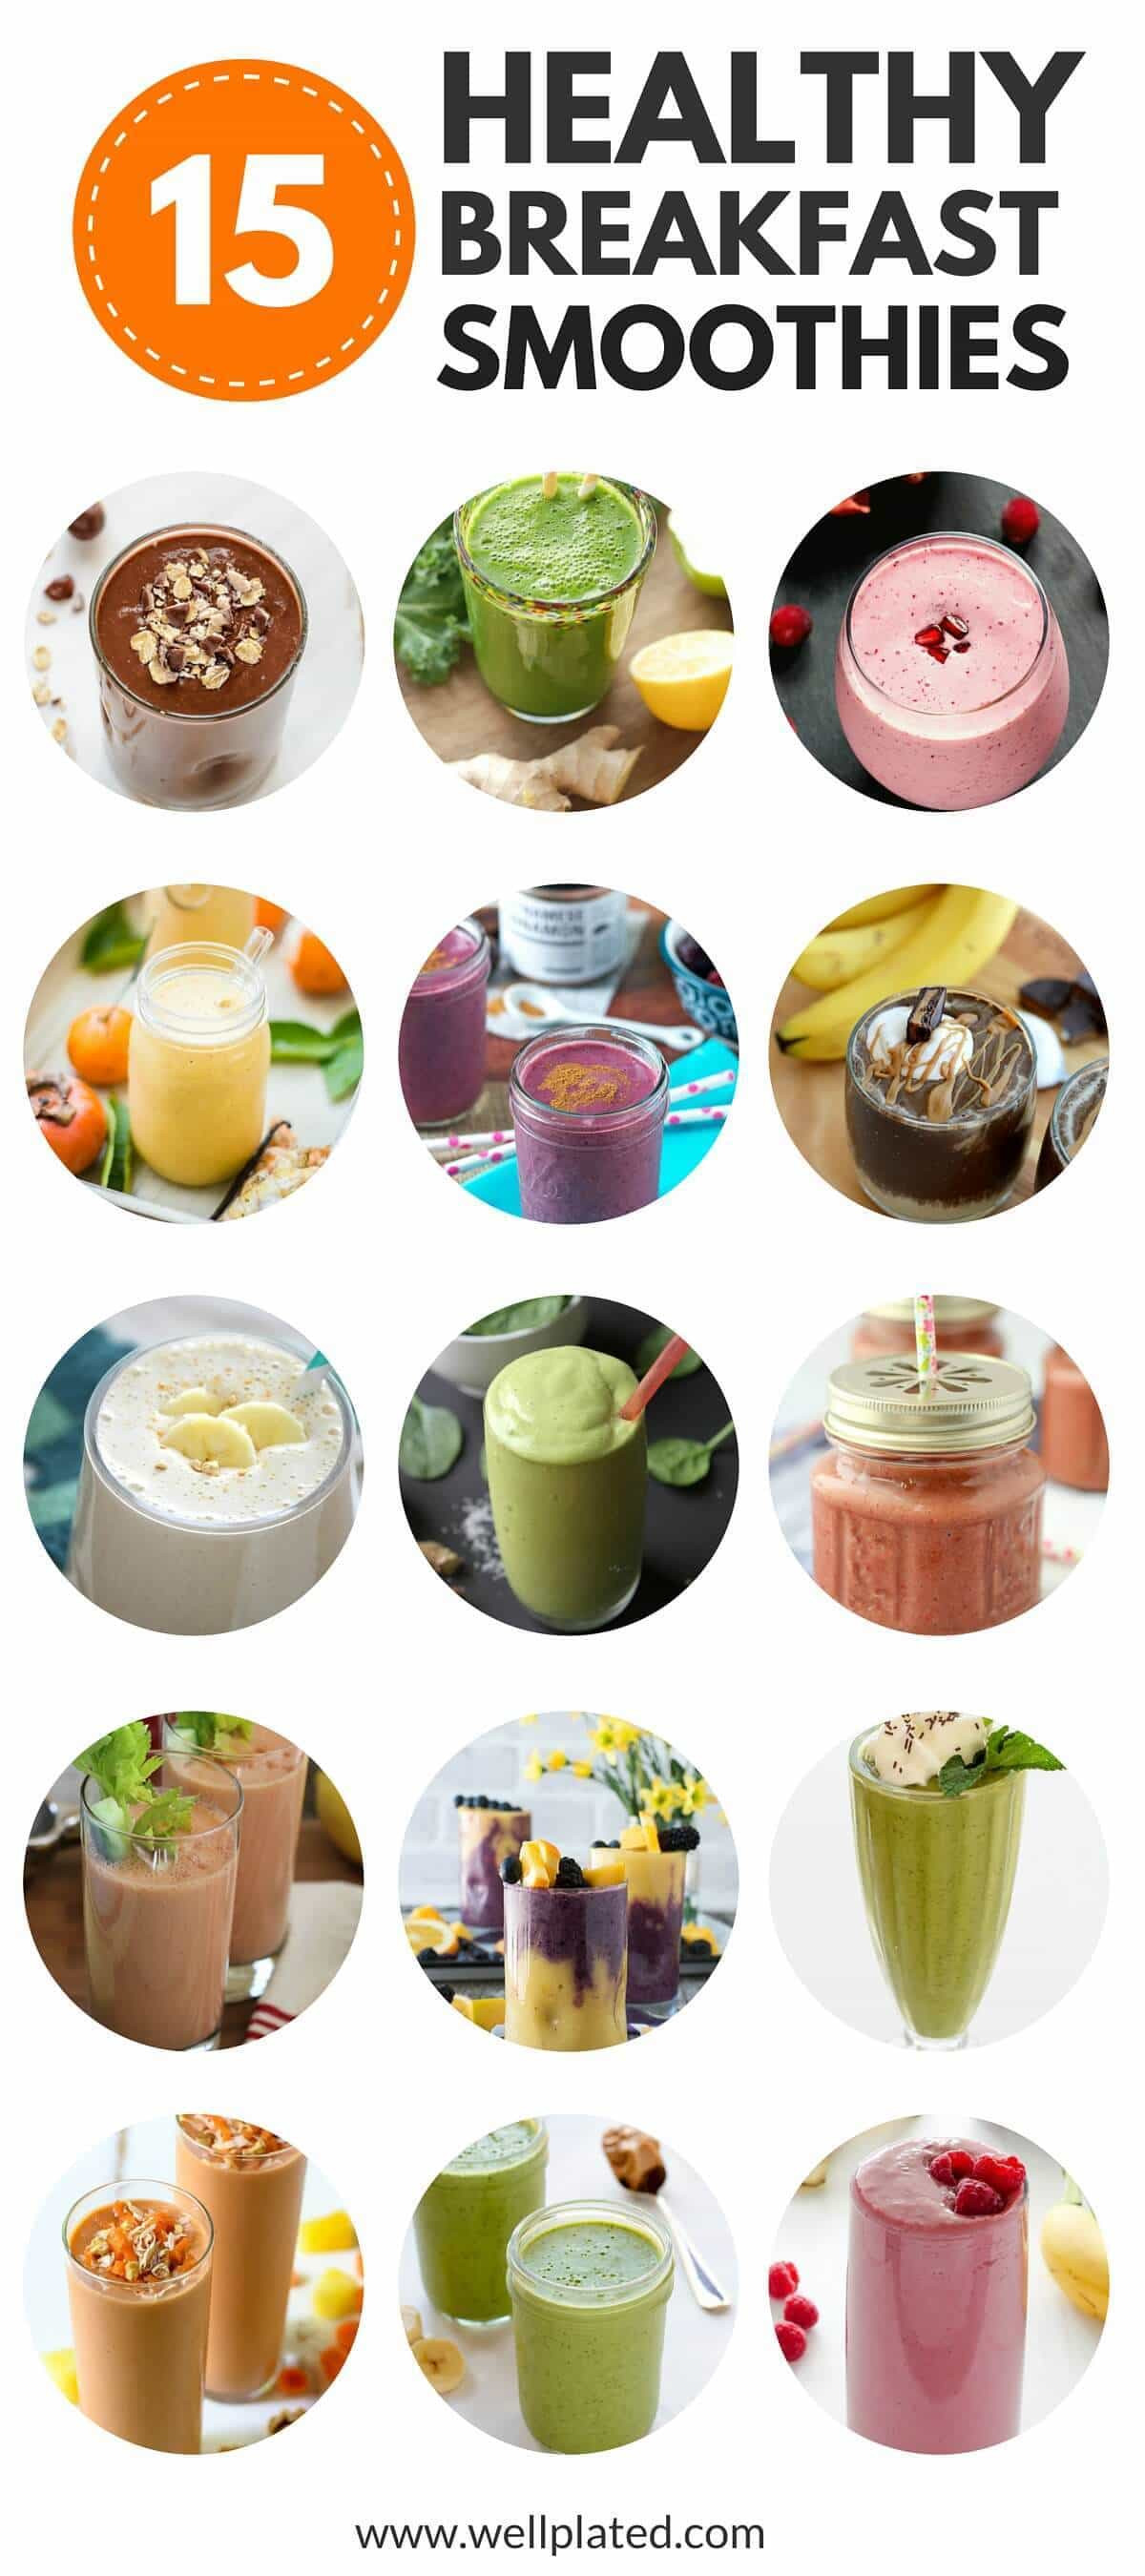 Healthiest Smoothie Recipes  The Best 15 Healthy Breakfast Smoothies